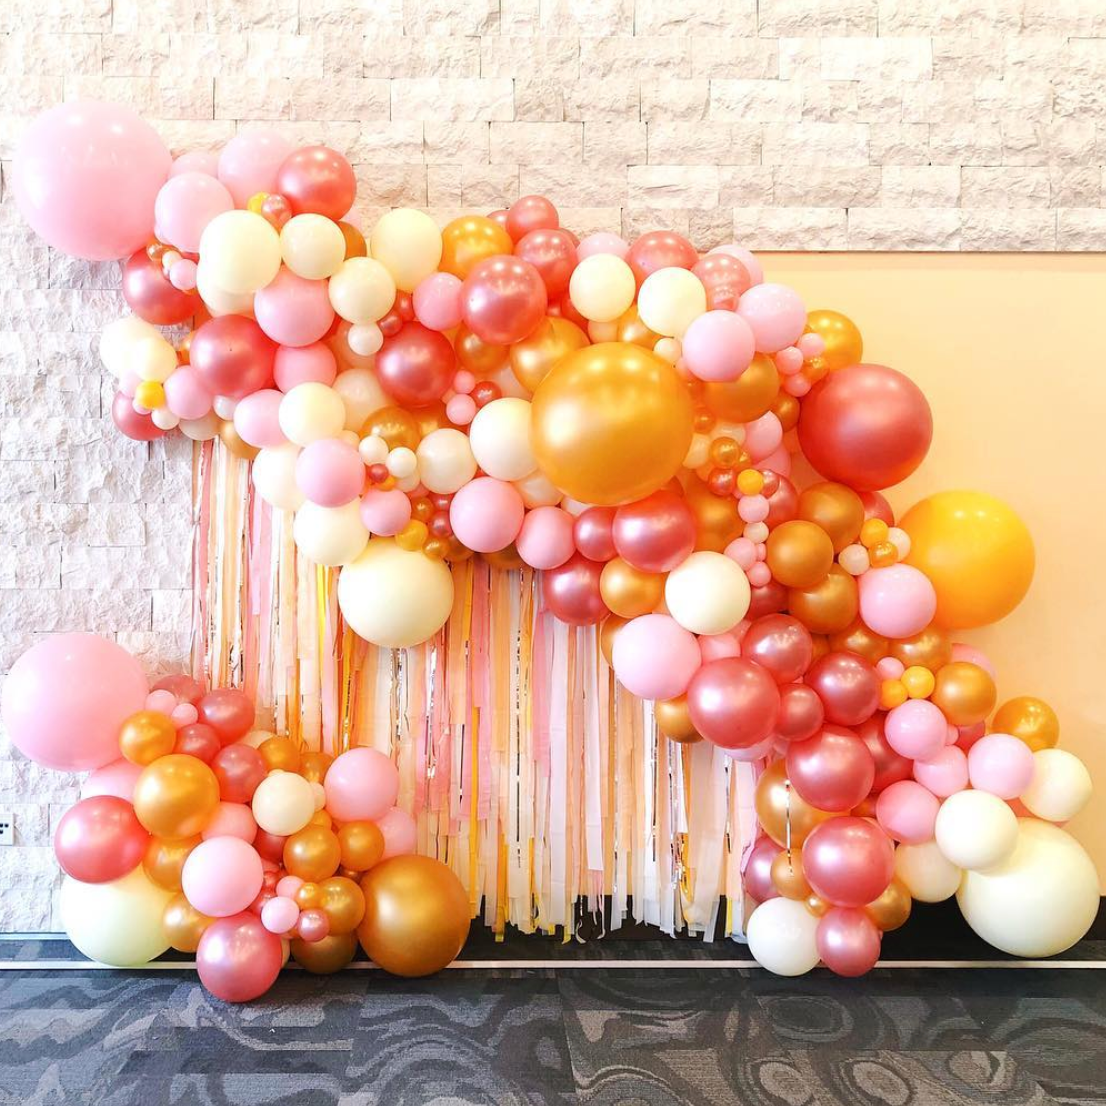 Organic balloon installation with major fringe for CMT's